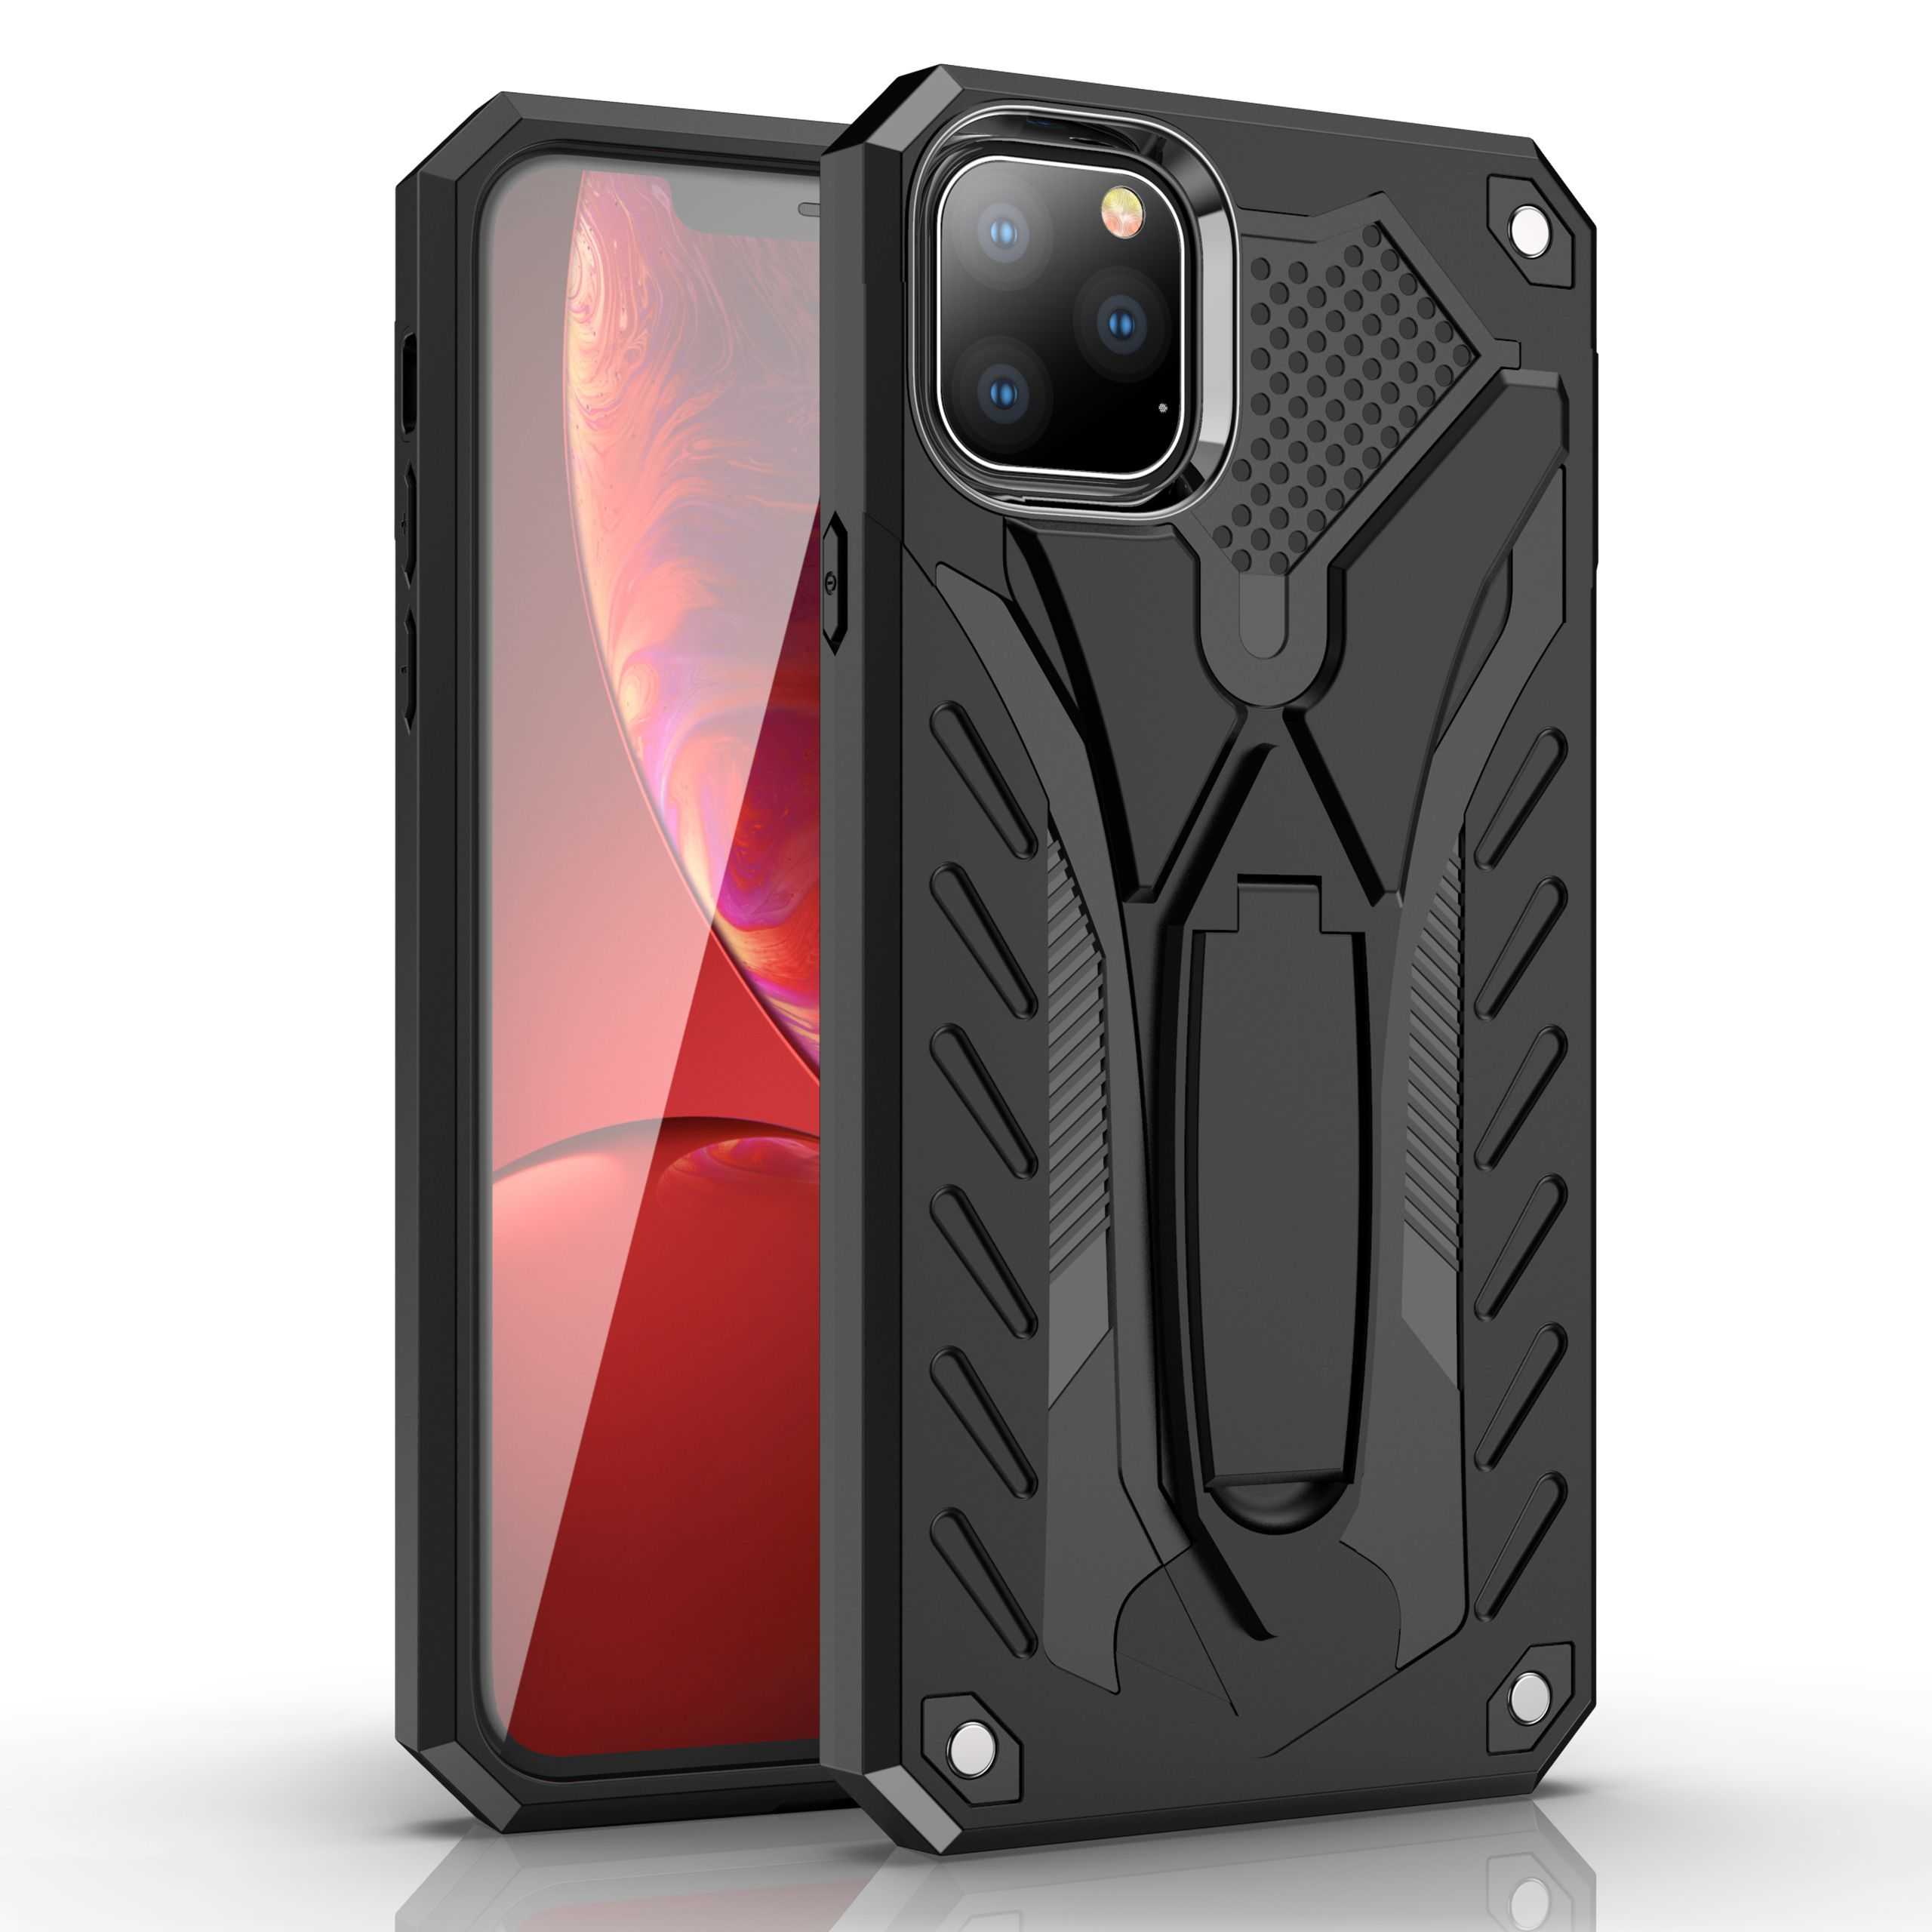 Rugged Armor <font><b>Case</b></font> <font><b>For</b></font> <font><b>Samsung</b></font> Galaxy A20 <font><b>A30</b></font> A40 A50 A60 A70 A20E A10E A80 A90 Holder Protective <font><b>Shockproof</b></font> phone <font><b>Case</b></font> Cover image